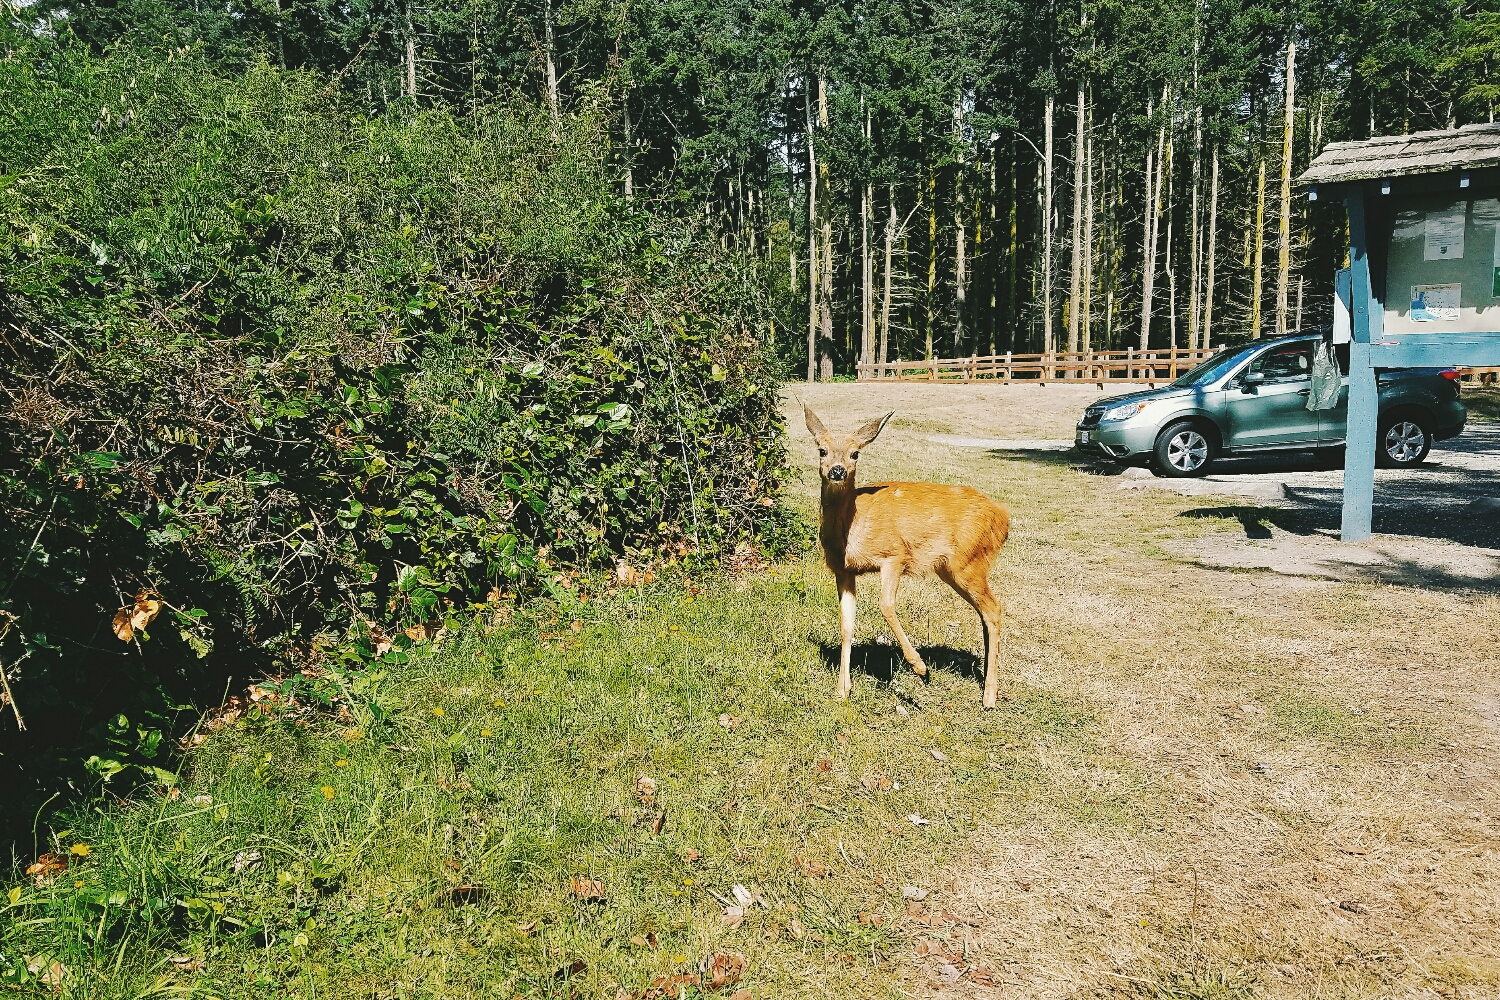 We saw so many young deer over the week.This one almost seemed like he wanted to be my friend!